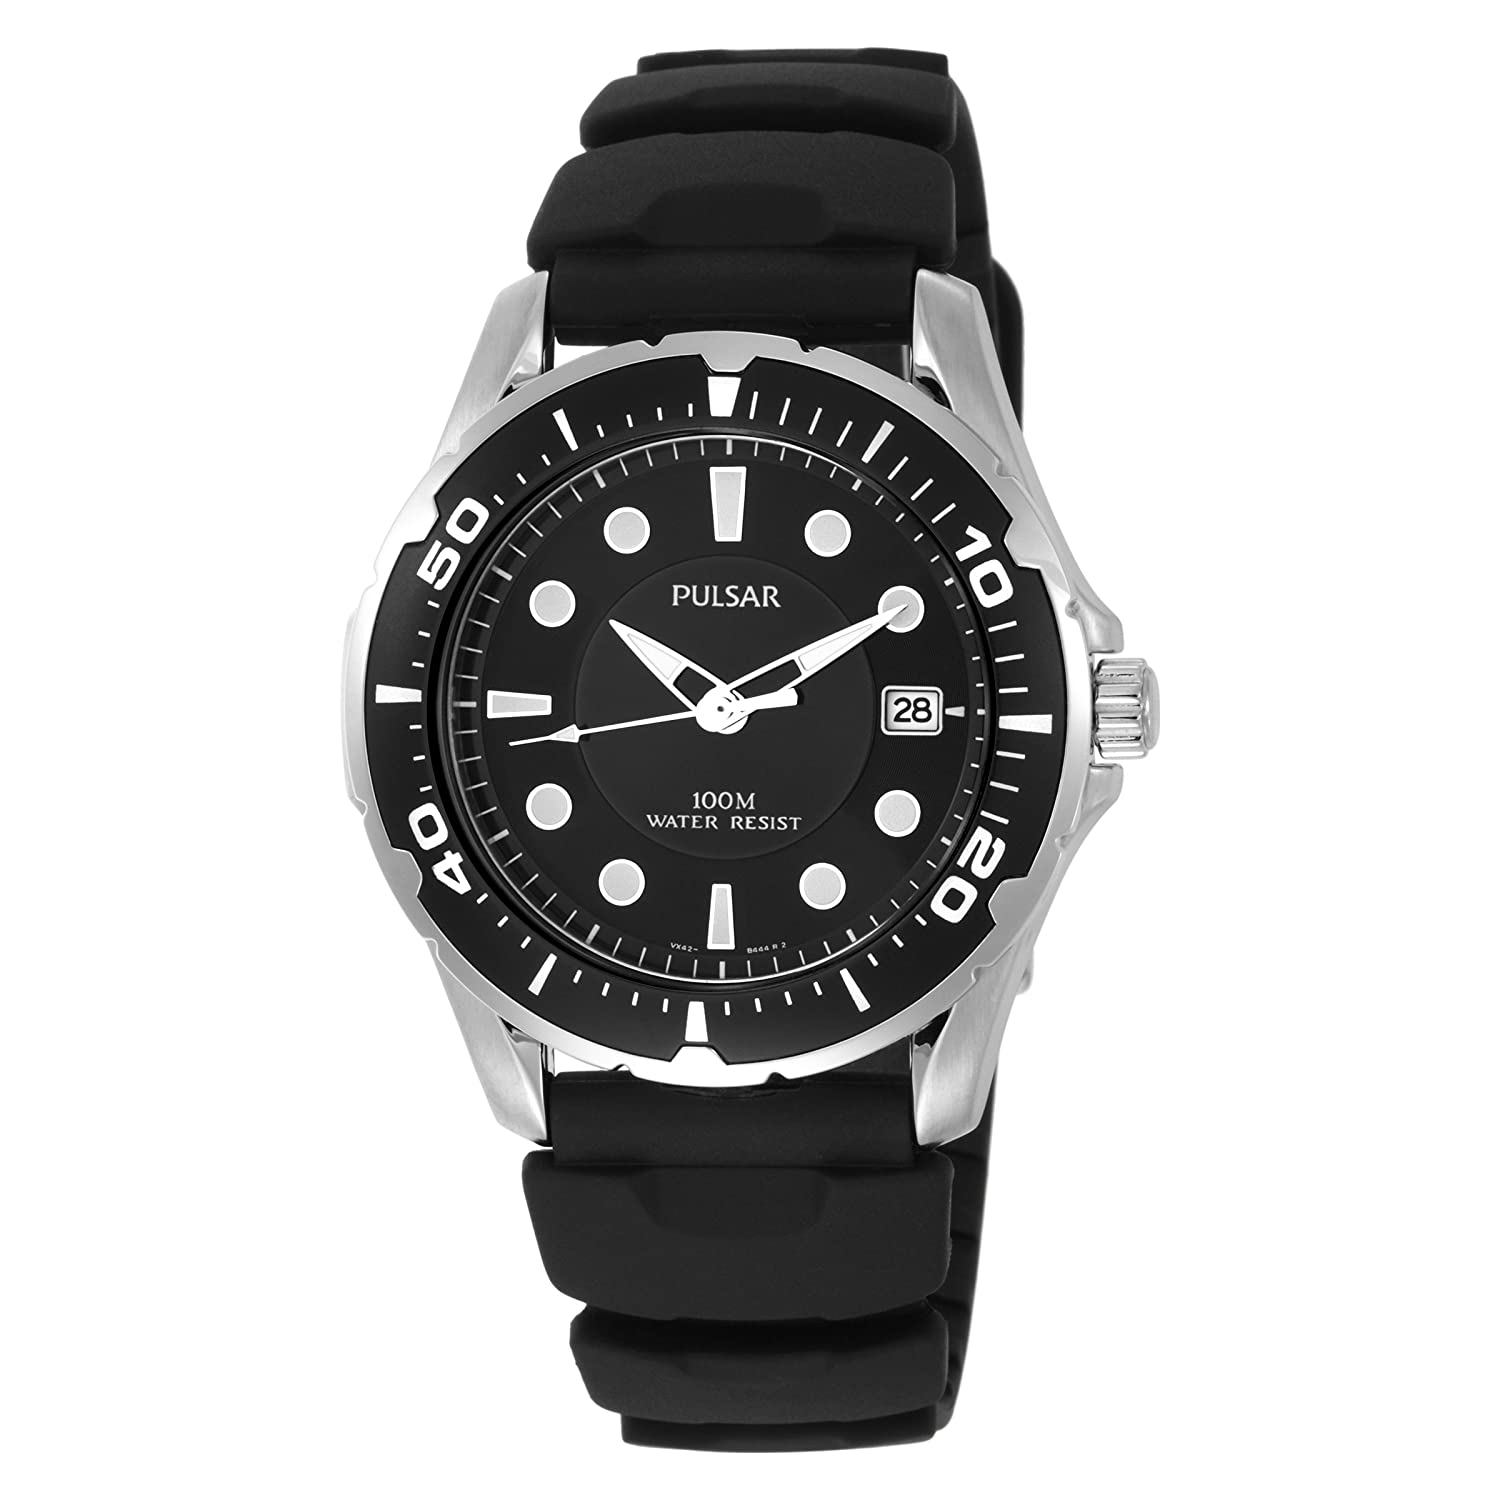 Pulsar Men's PXH227 Sport Watch $28